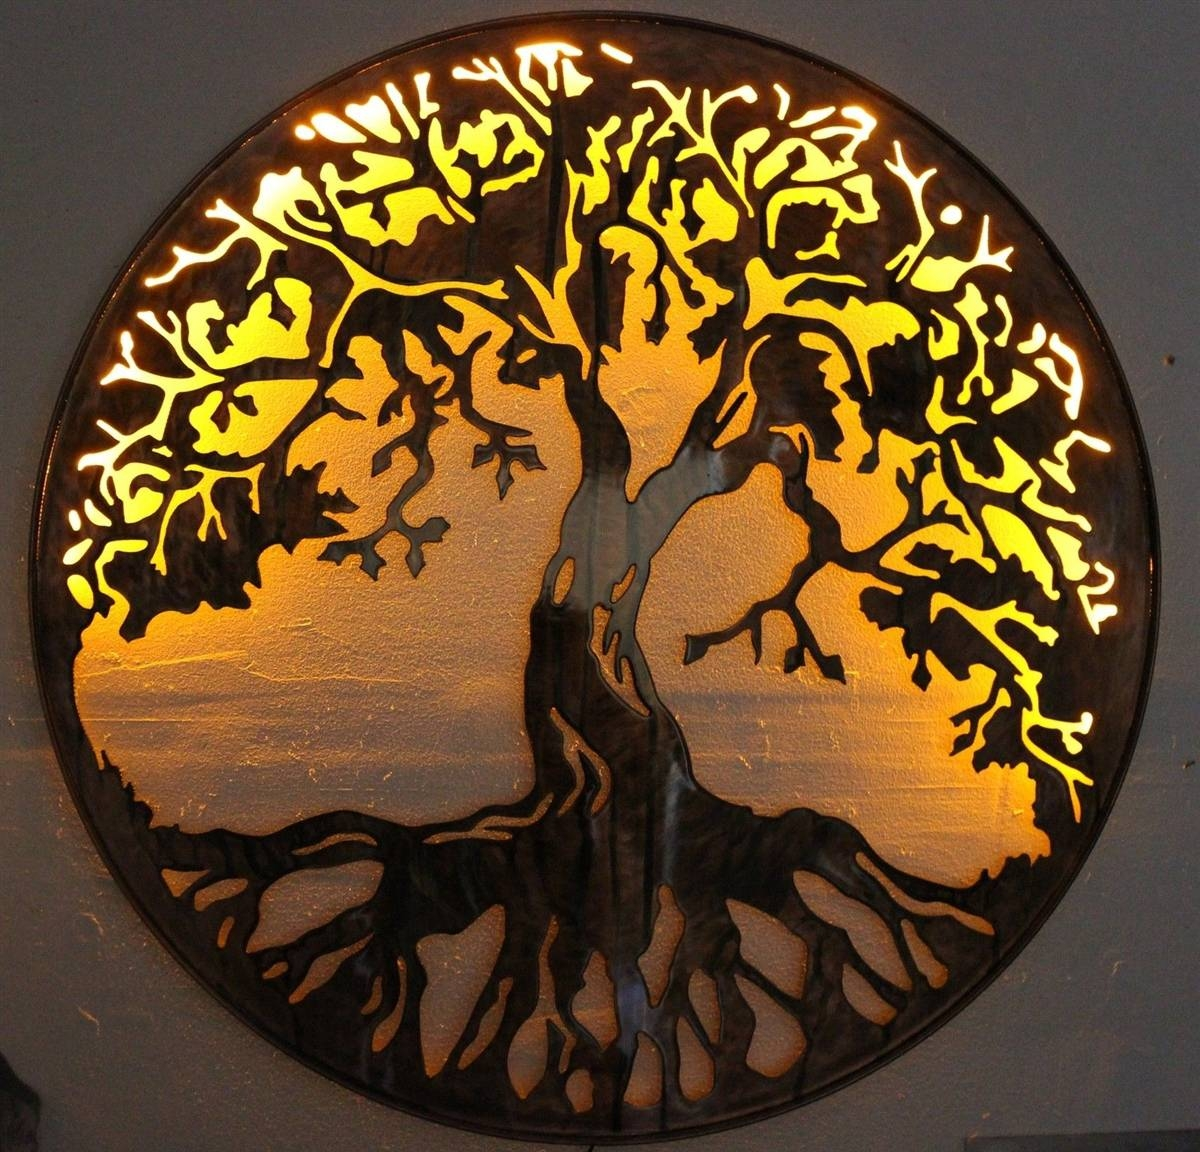 "Of Life Metal Wall Art 24"" With Led Lightshgmw With Regard To Recent Tree Of Life Metal Wall Art (View 8 of 20)"